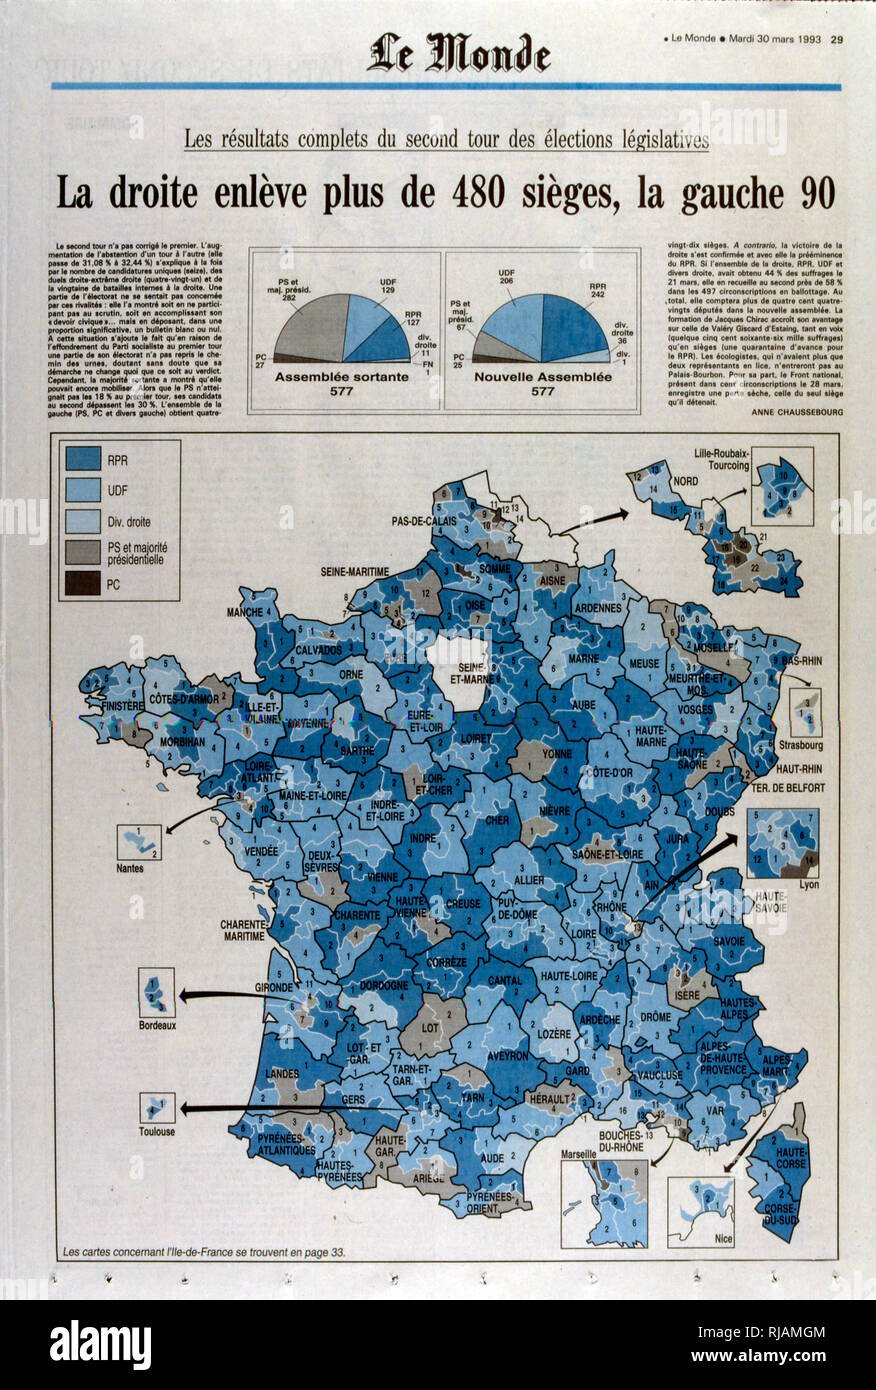 Le monde' Publishes the results of the second round of the French legislative elections in March 1993 to elect the tenth National Assembly of the Fifth Republic. The election was a landslide victory for the RPR-UDF alliance, while the PS and their left-wing allies received their worst result since the 1960s - Stock Image